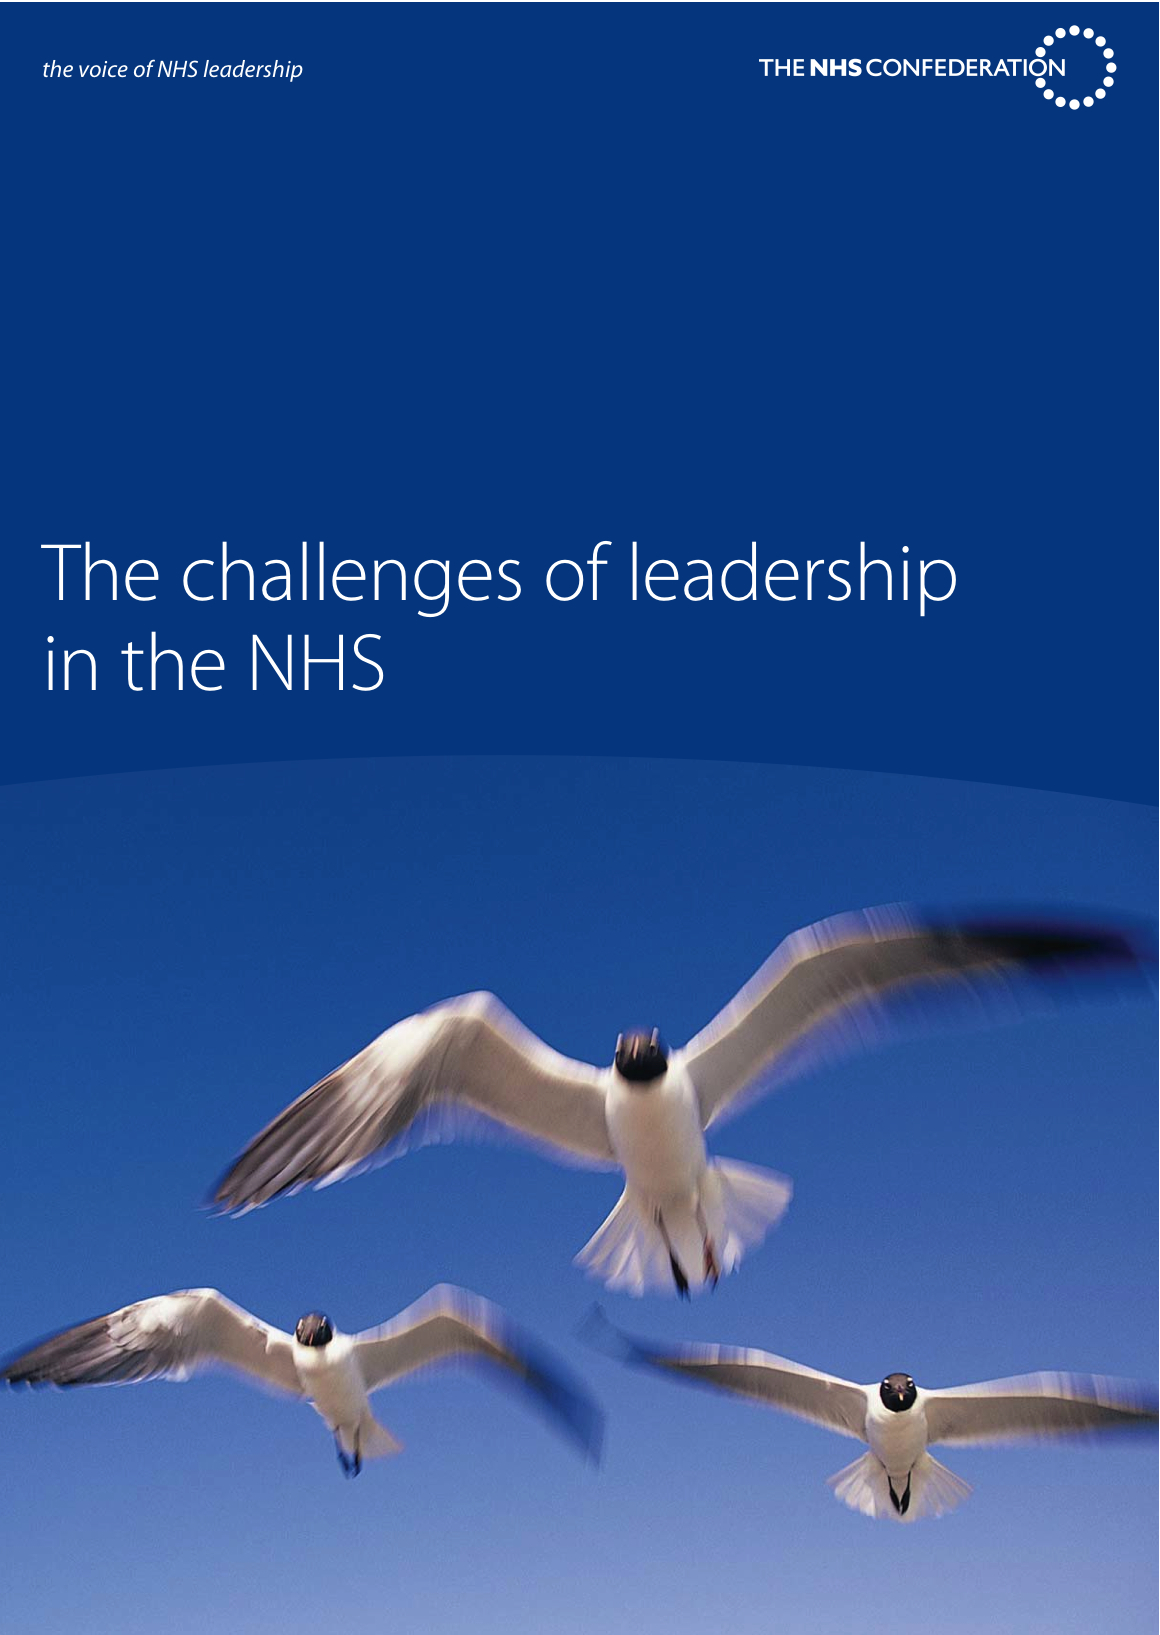 The challenges of leadership in the NHS""